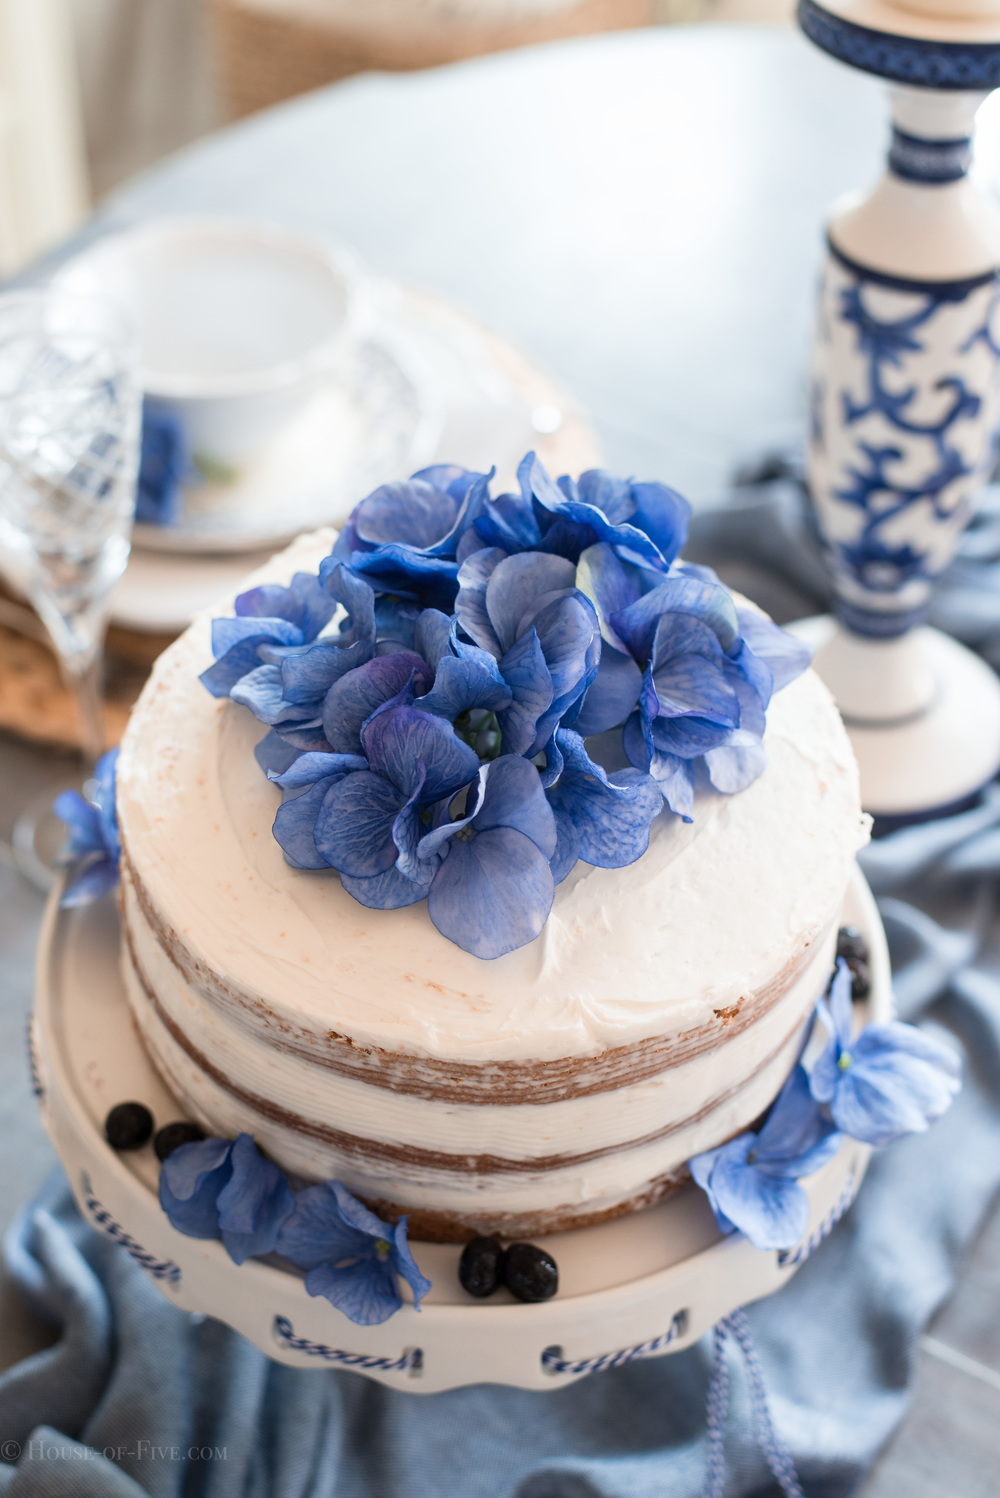 Naked cake with Blue flowers